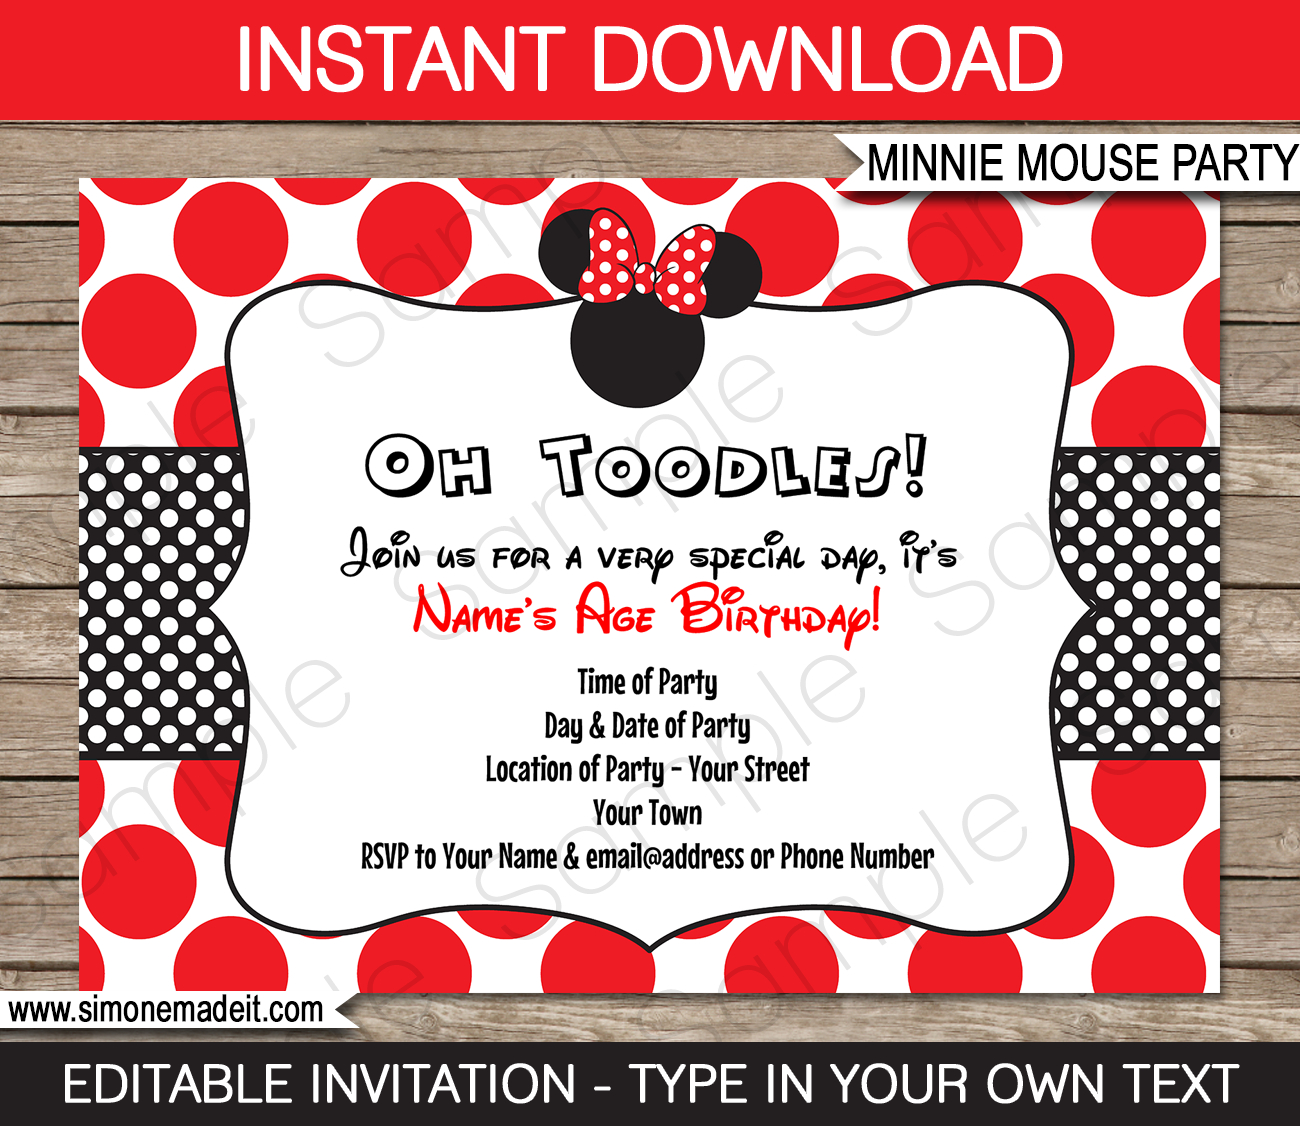 Minnie Mouse Birthday Party Invitations Template | Red - Free Printable Minnie Mouse Party Invitations